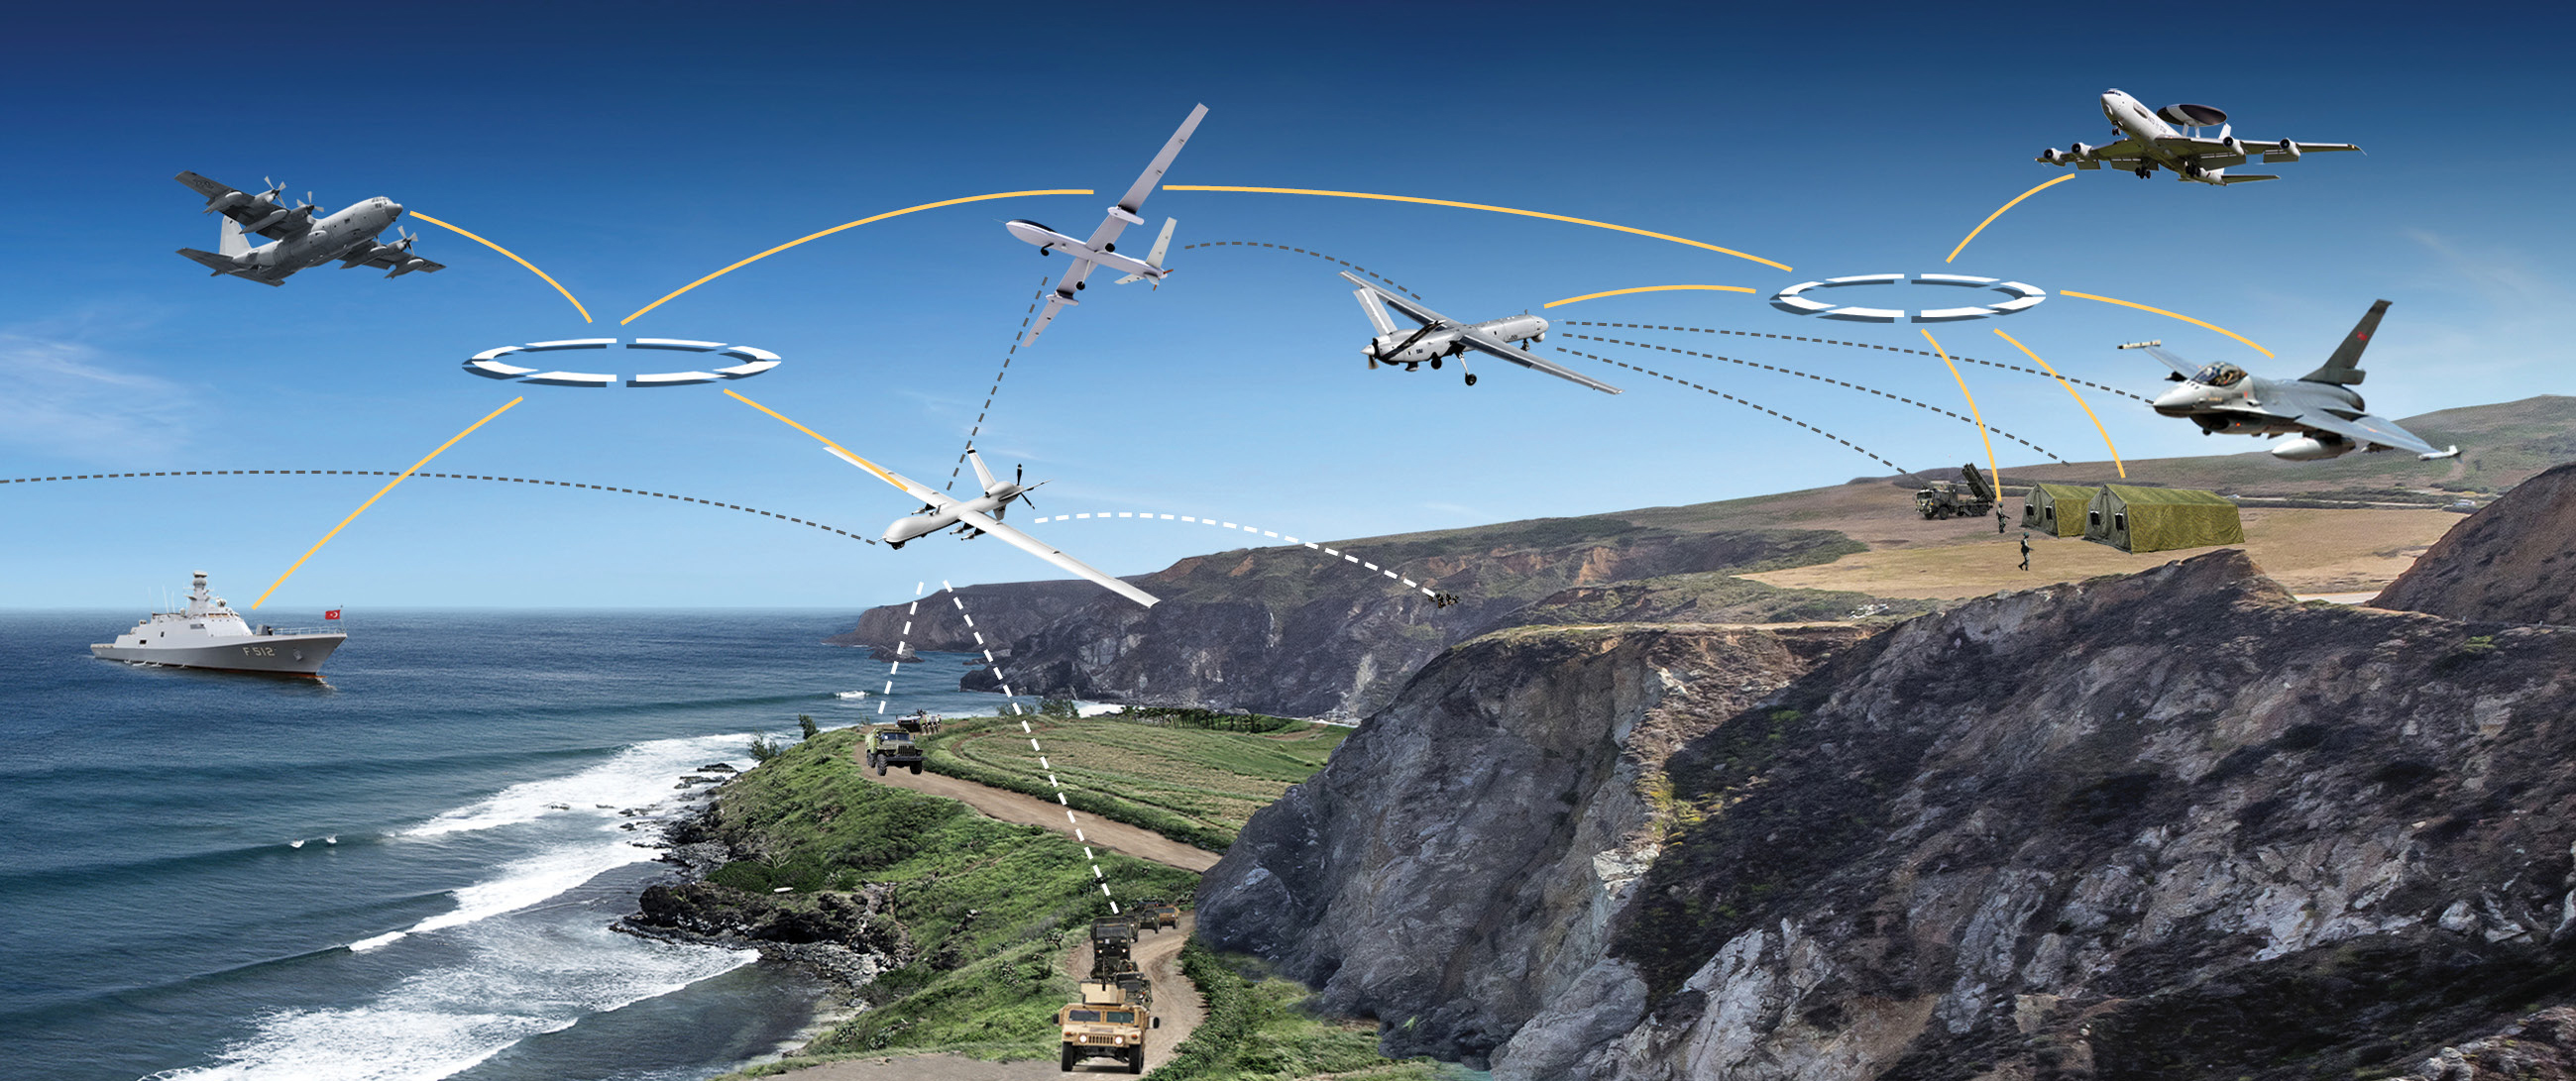 The Contract About Marine Tactical Radio Network Is Sıgned with SSB…